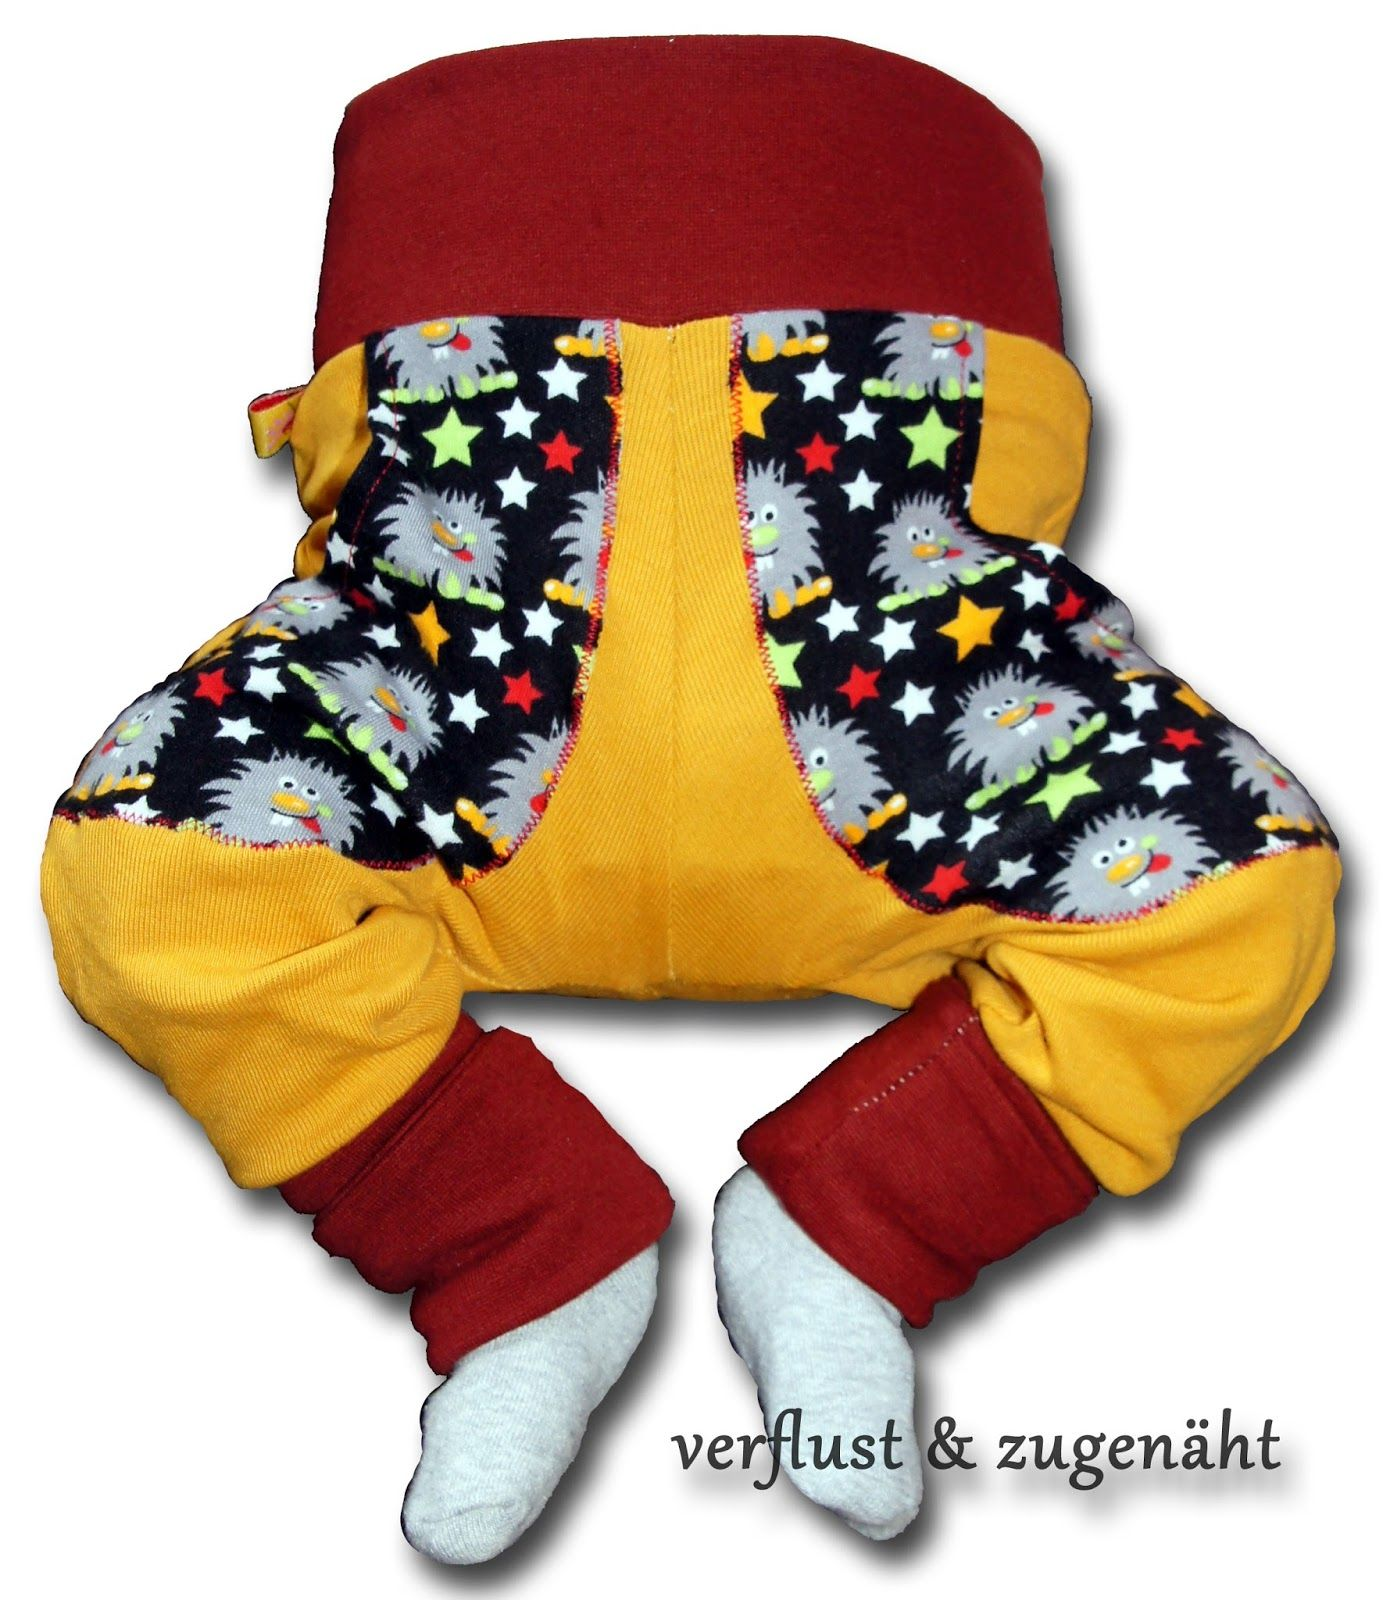 Kinderhose aus T-Shirt und Stoffresten / Children's pants made from old shirt and scraps of fabric / Upcycling